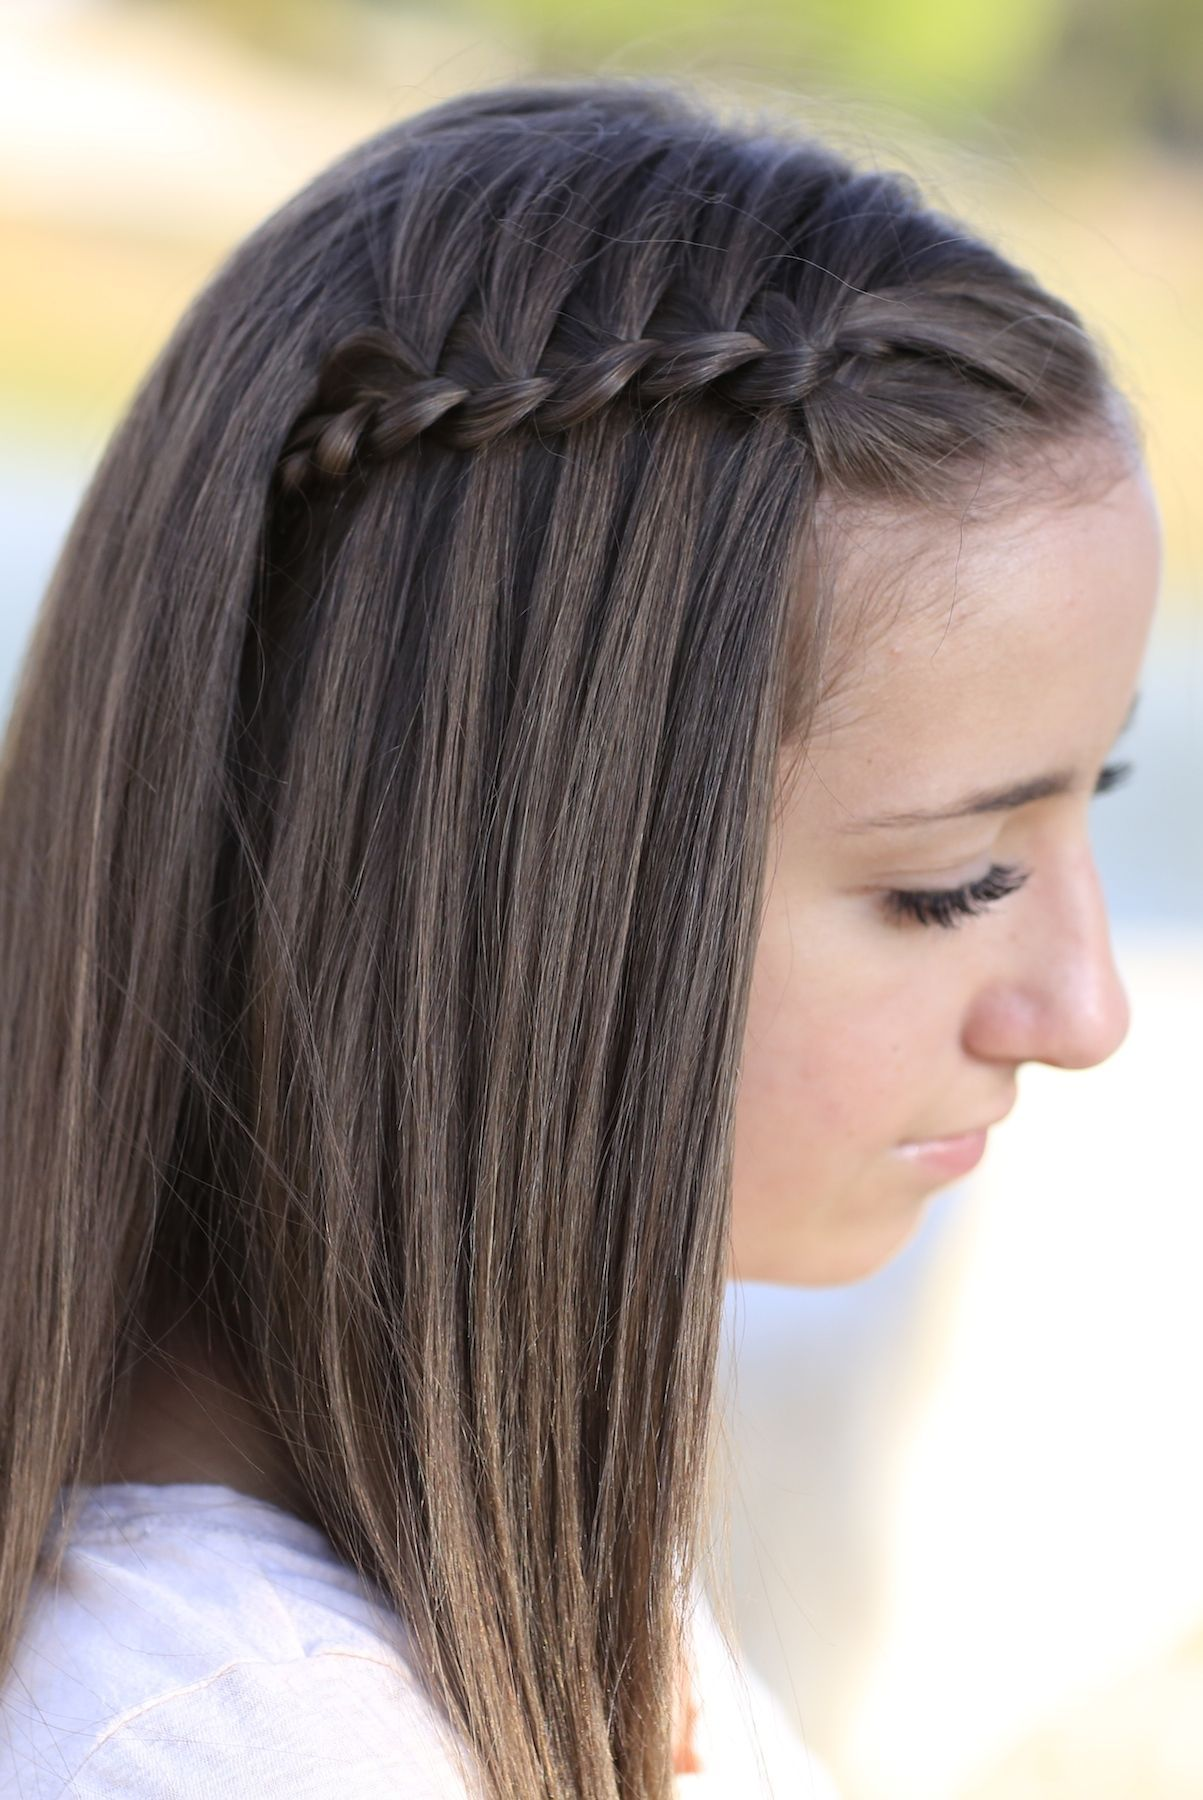 Cute Easy Hairstyles For 11 Year Olds Step By Step en 11